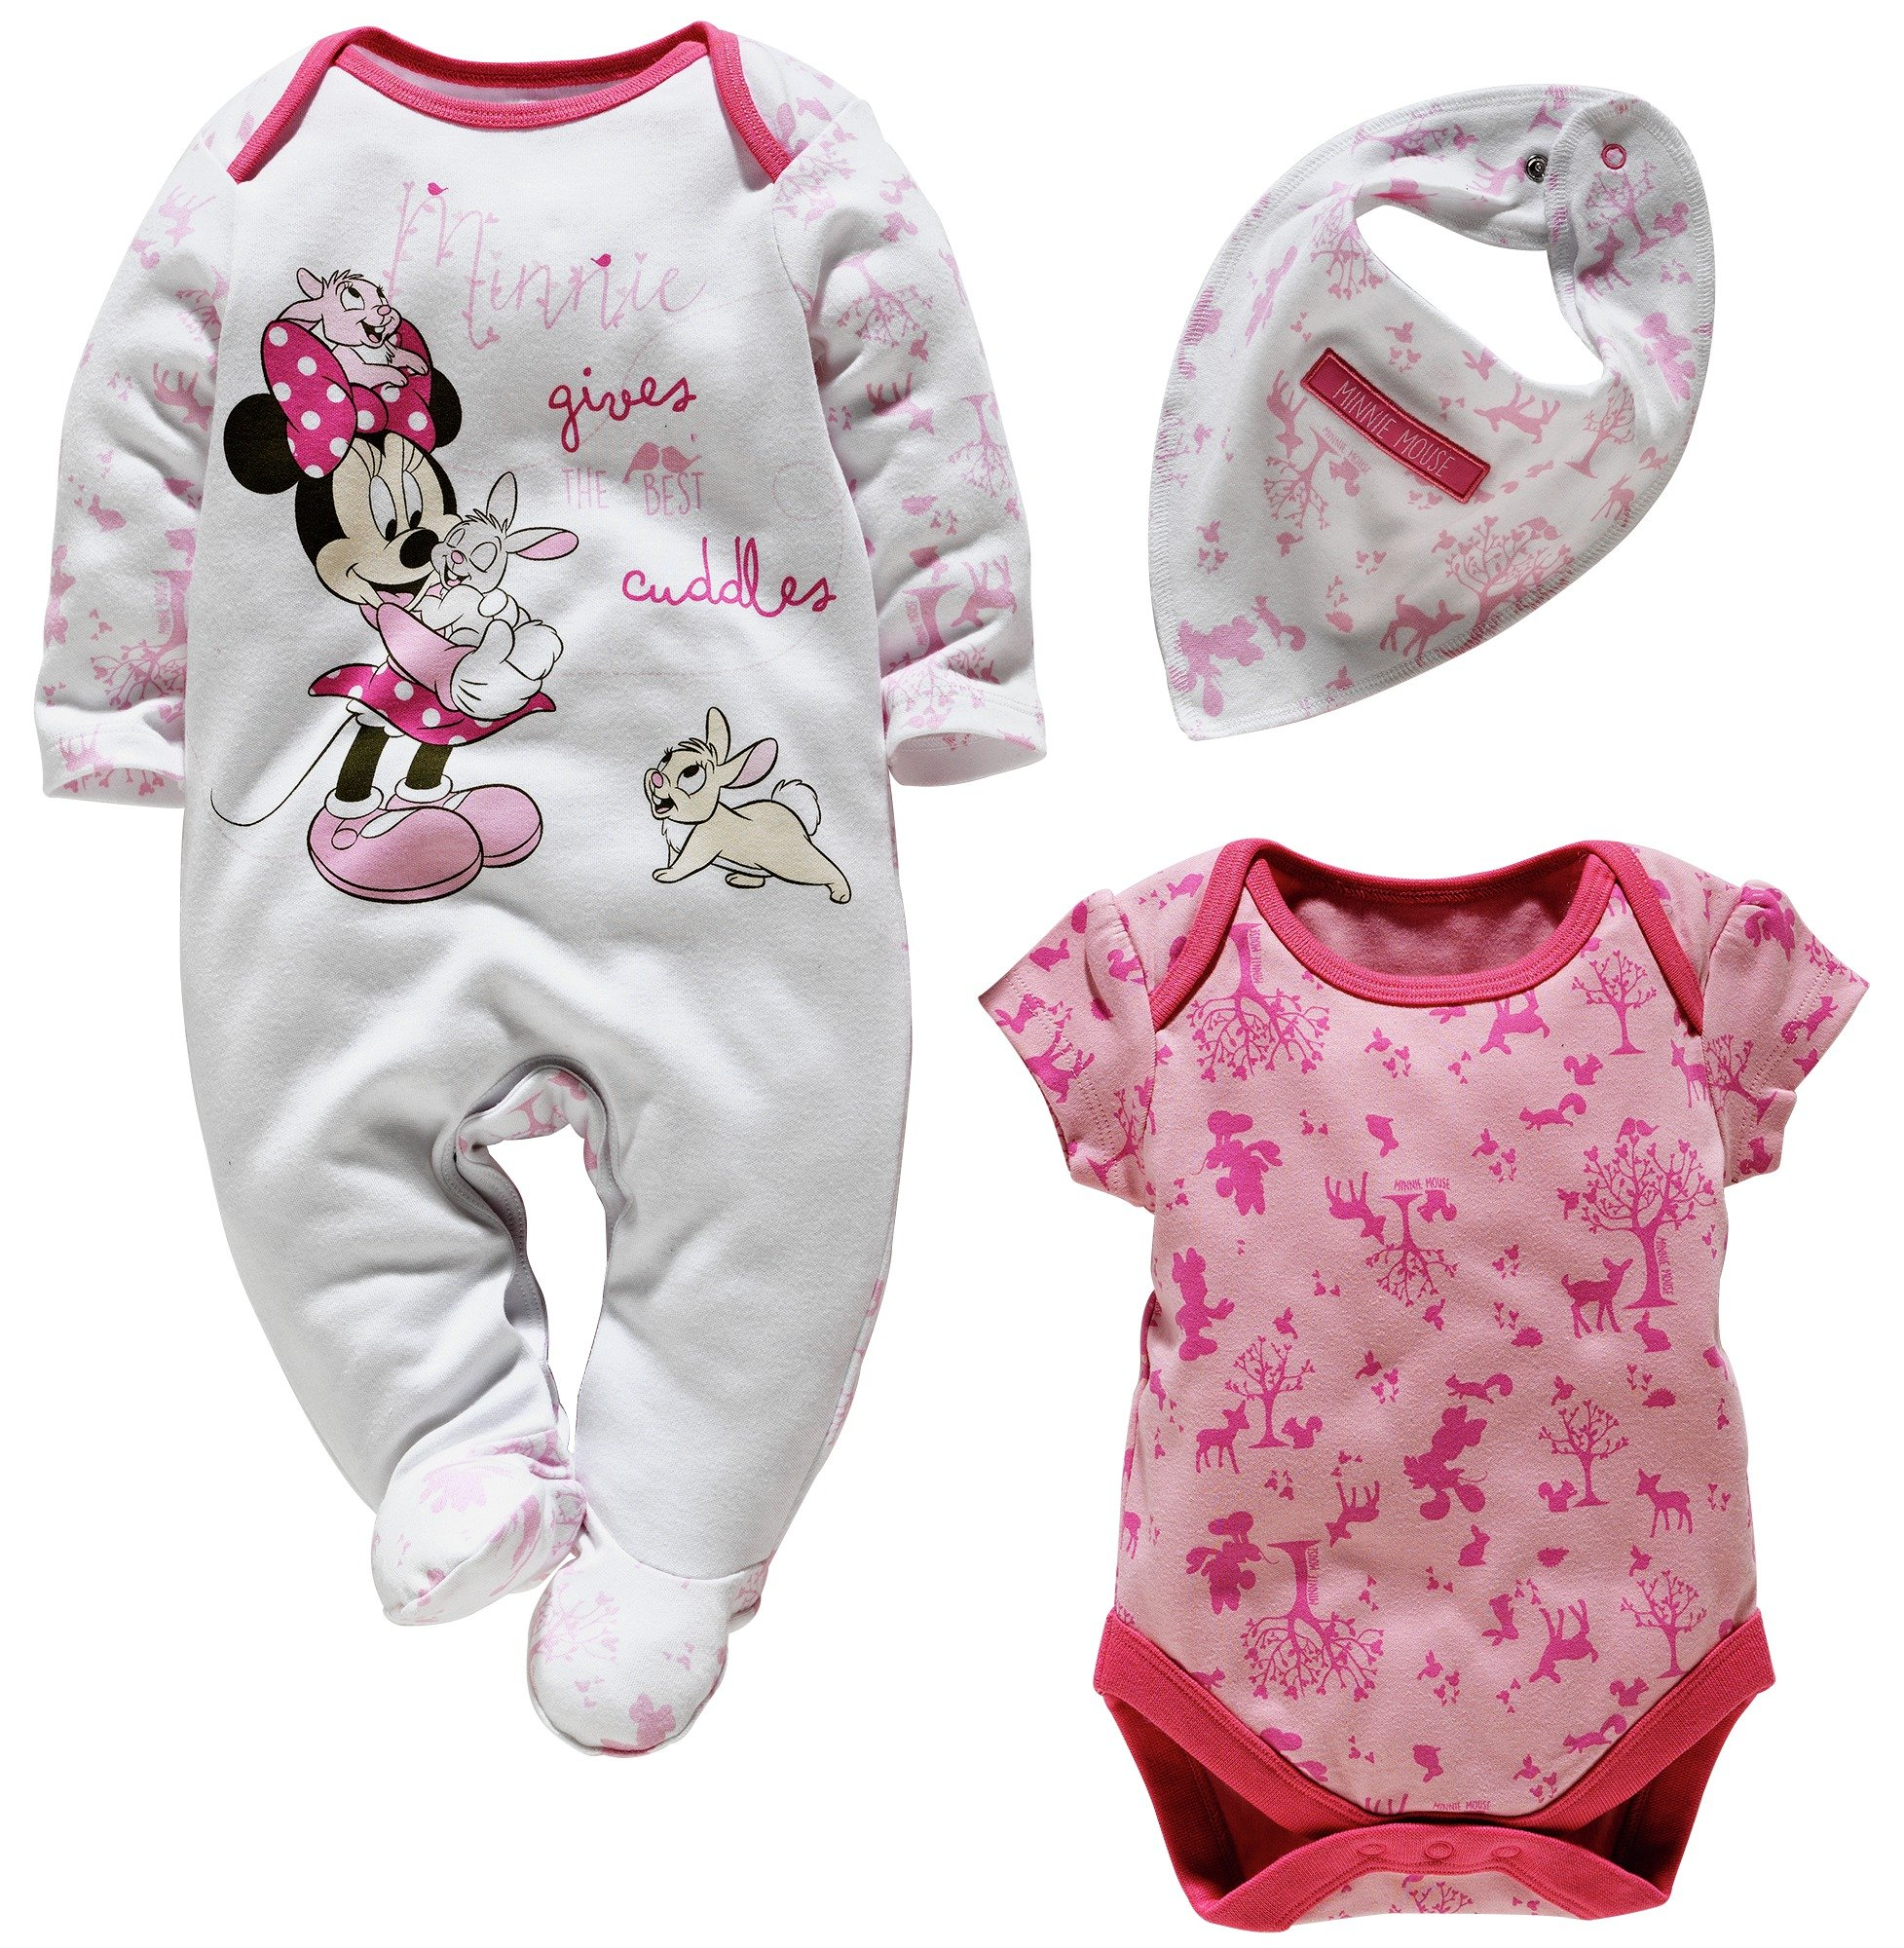 Image of Baby Minnie Mouse Gift Set - 3-6 Months